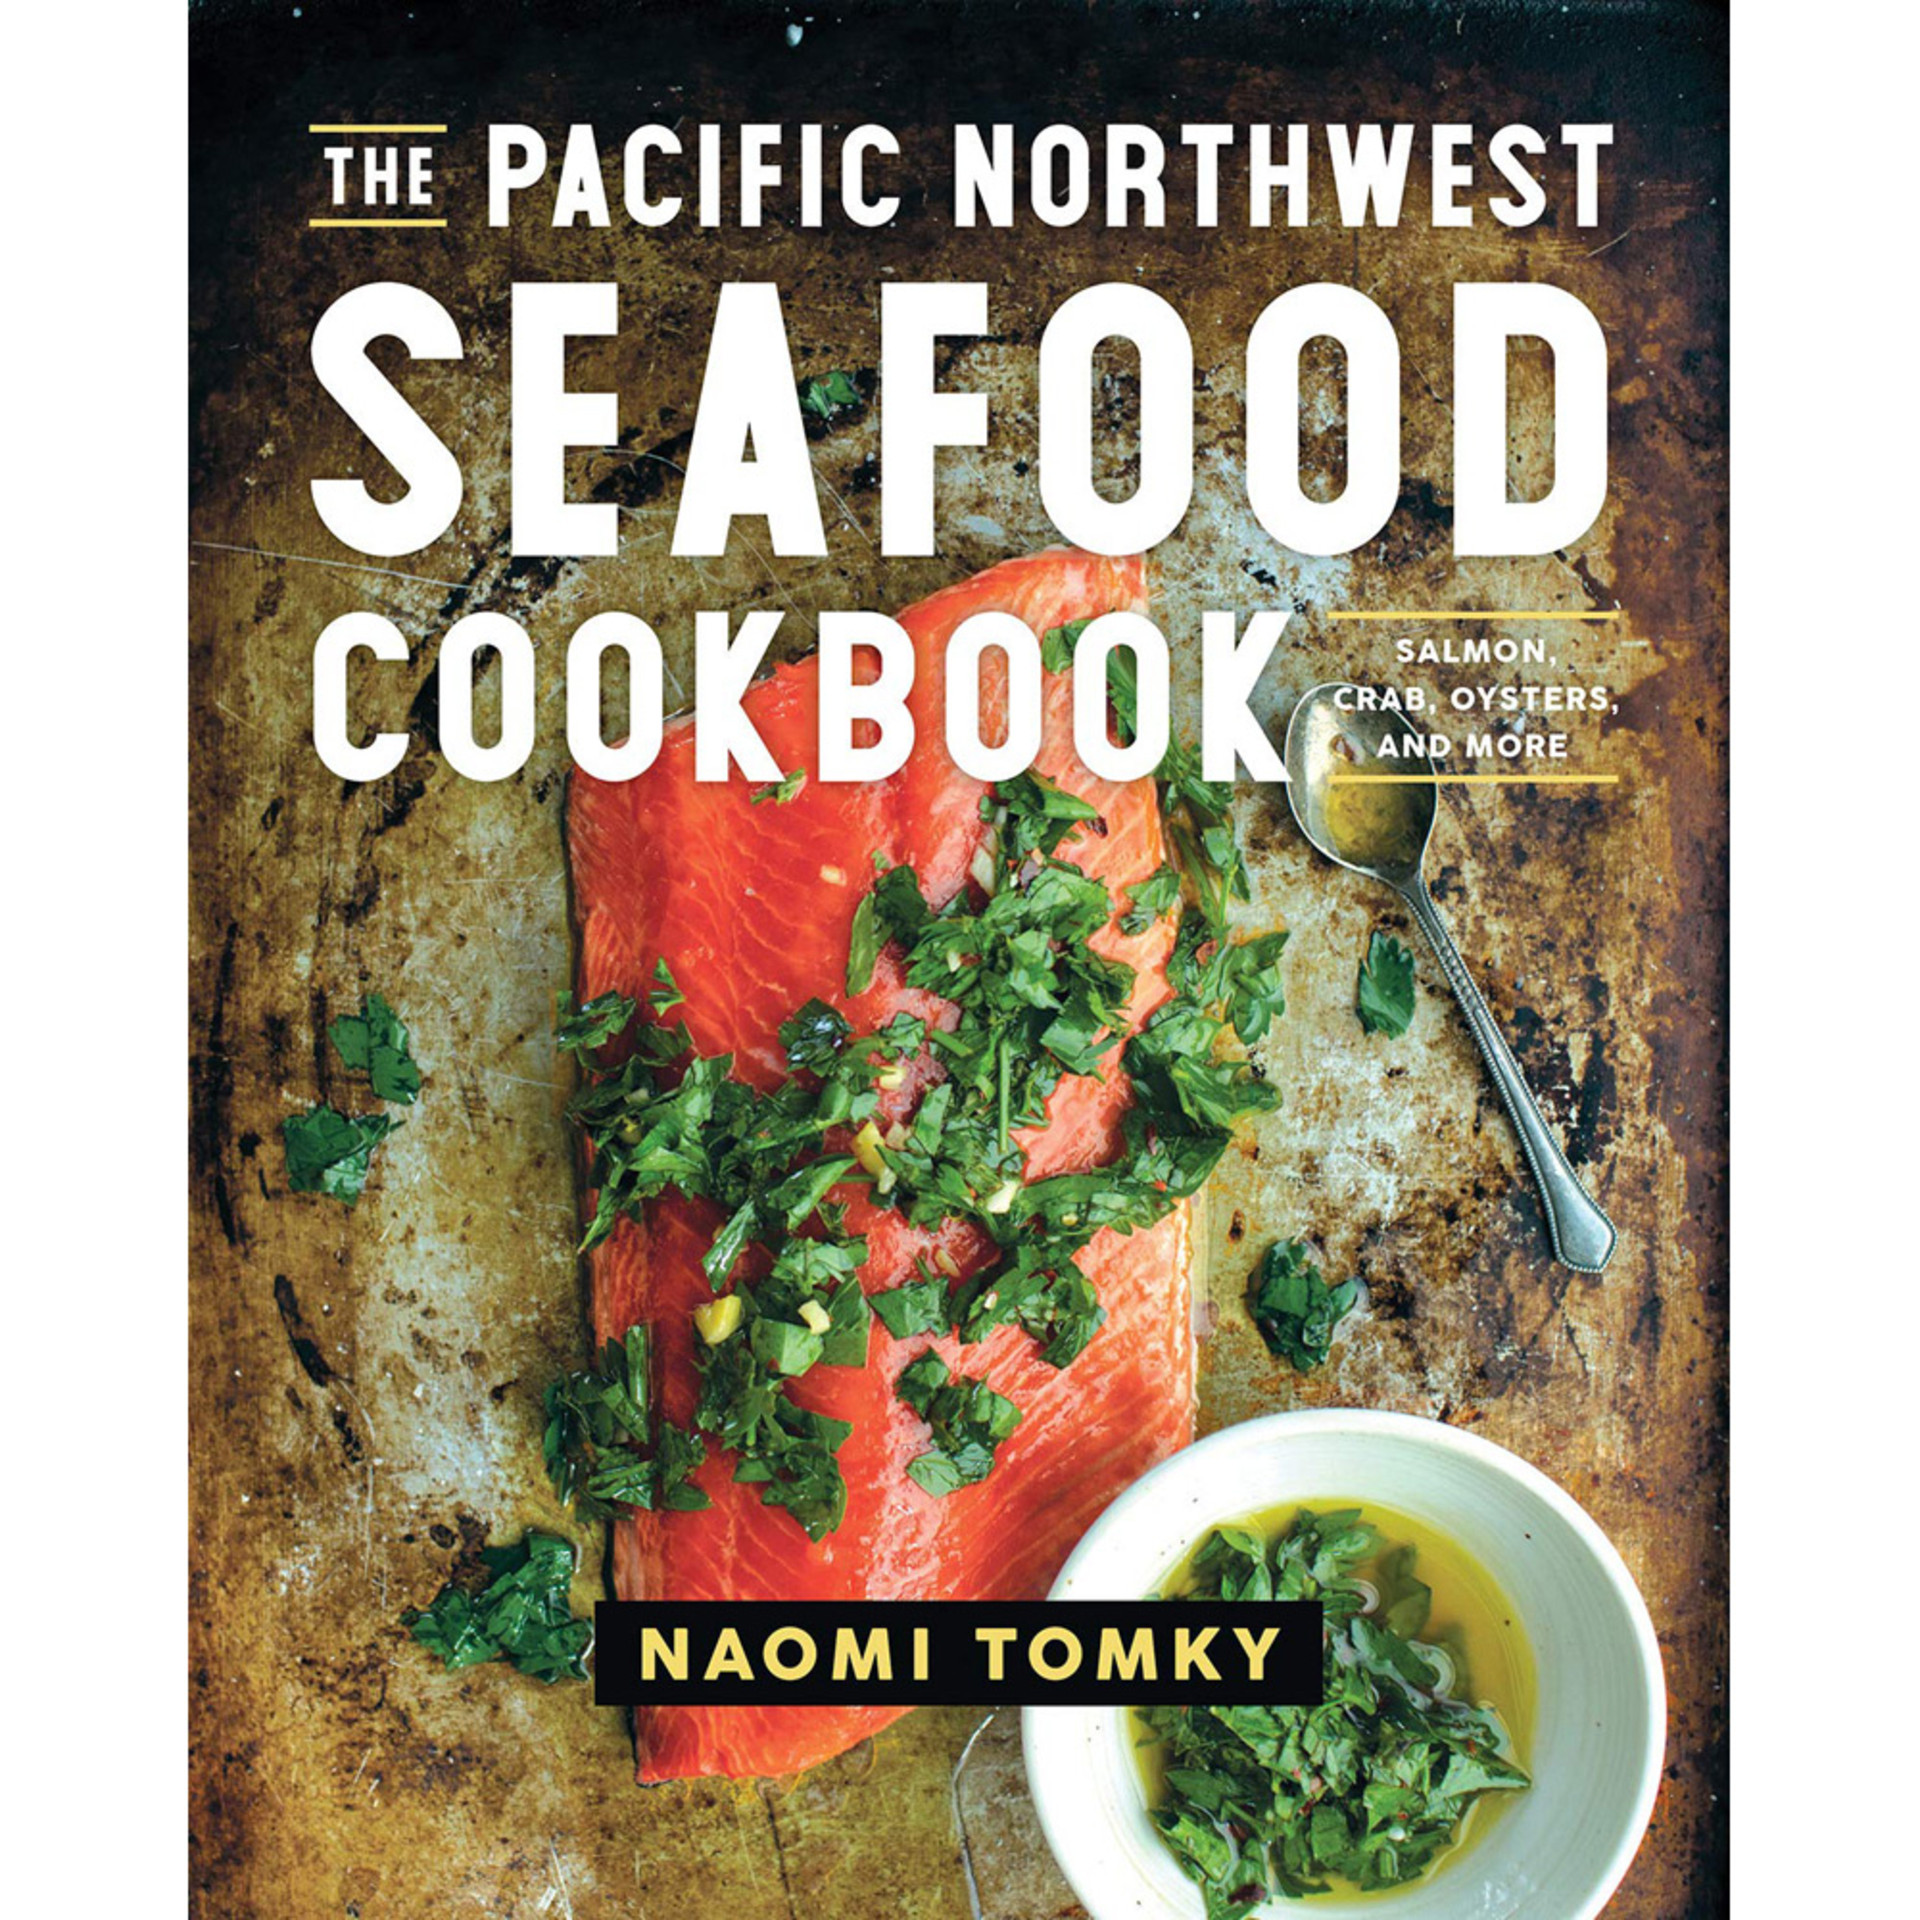 The Pacific Northwest Seafood Cookbook ...